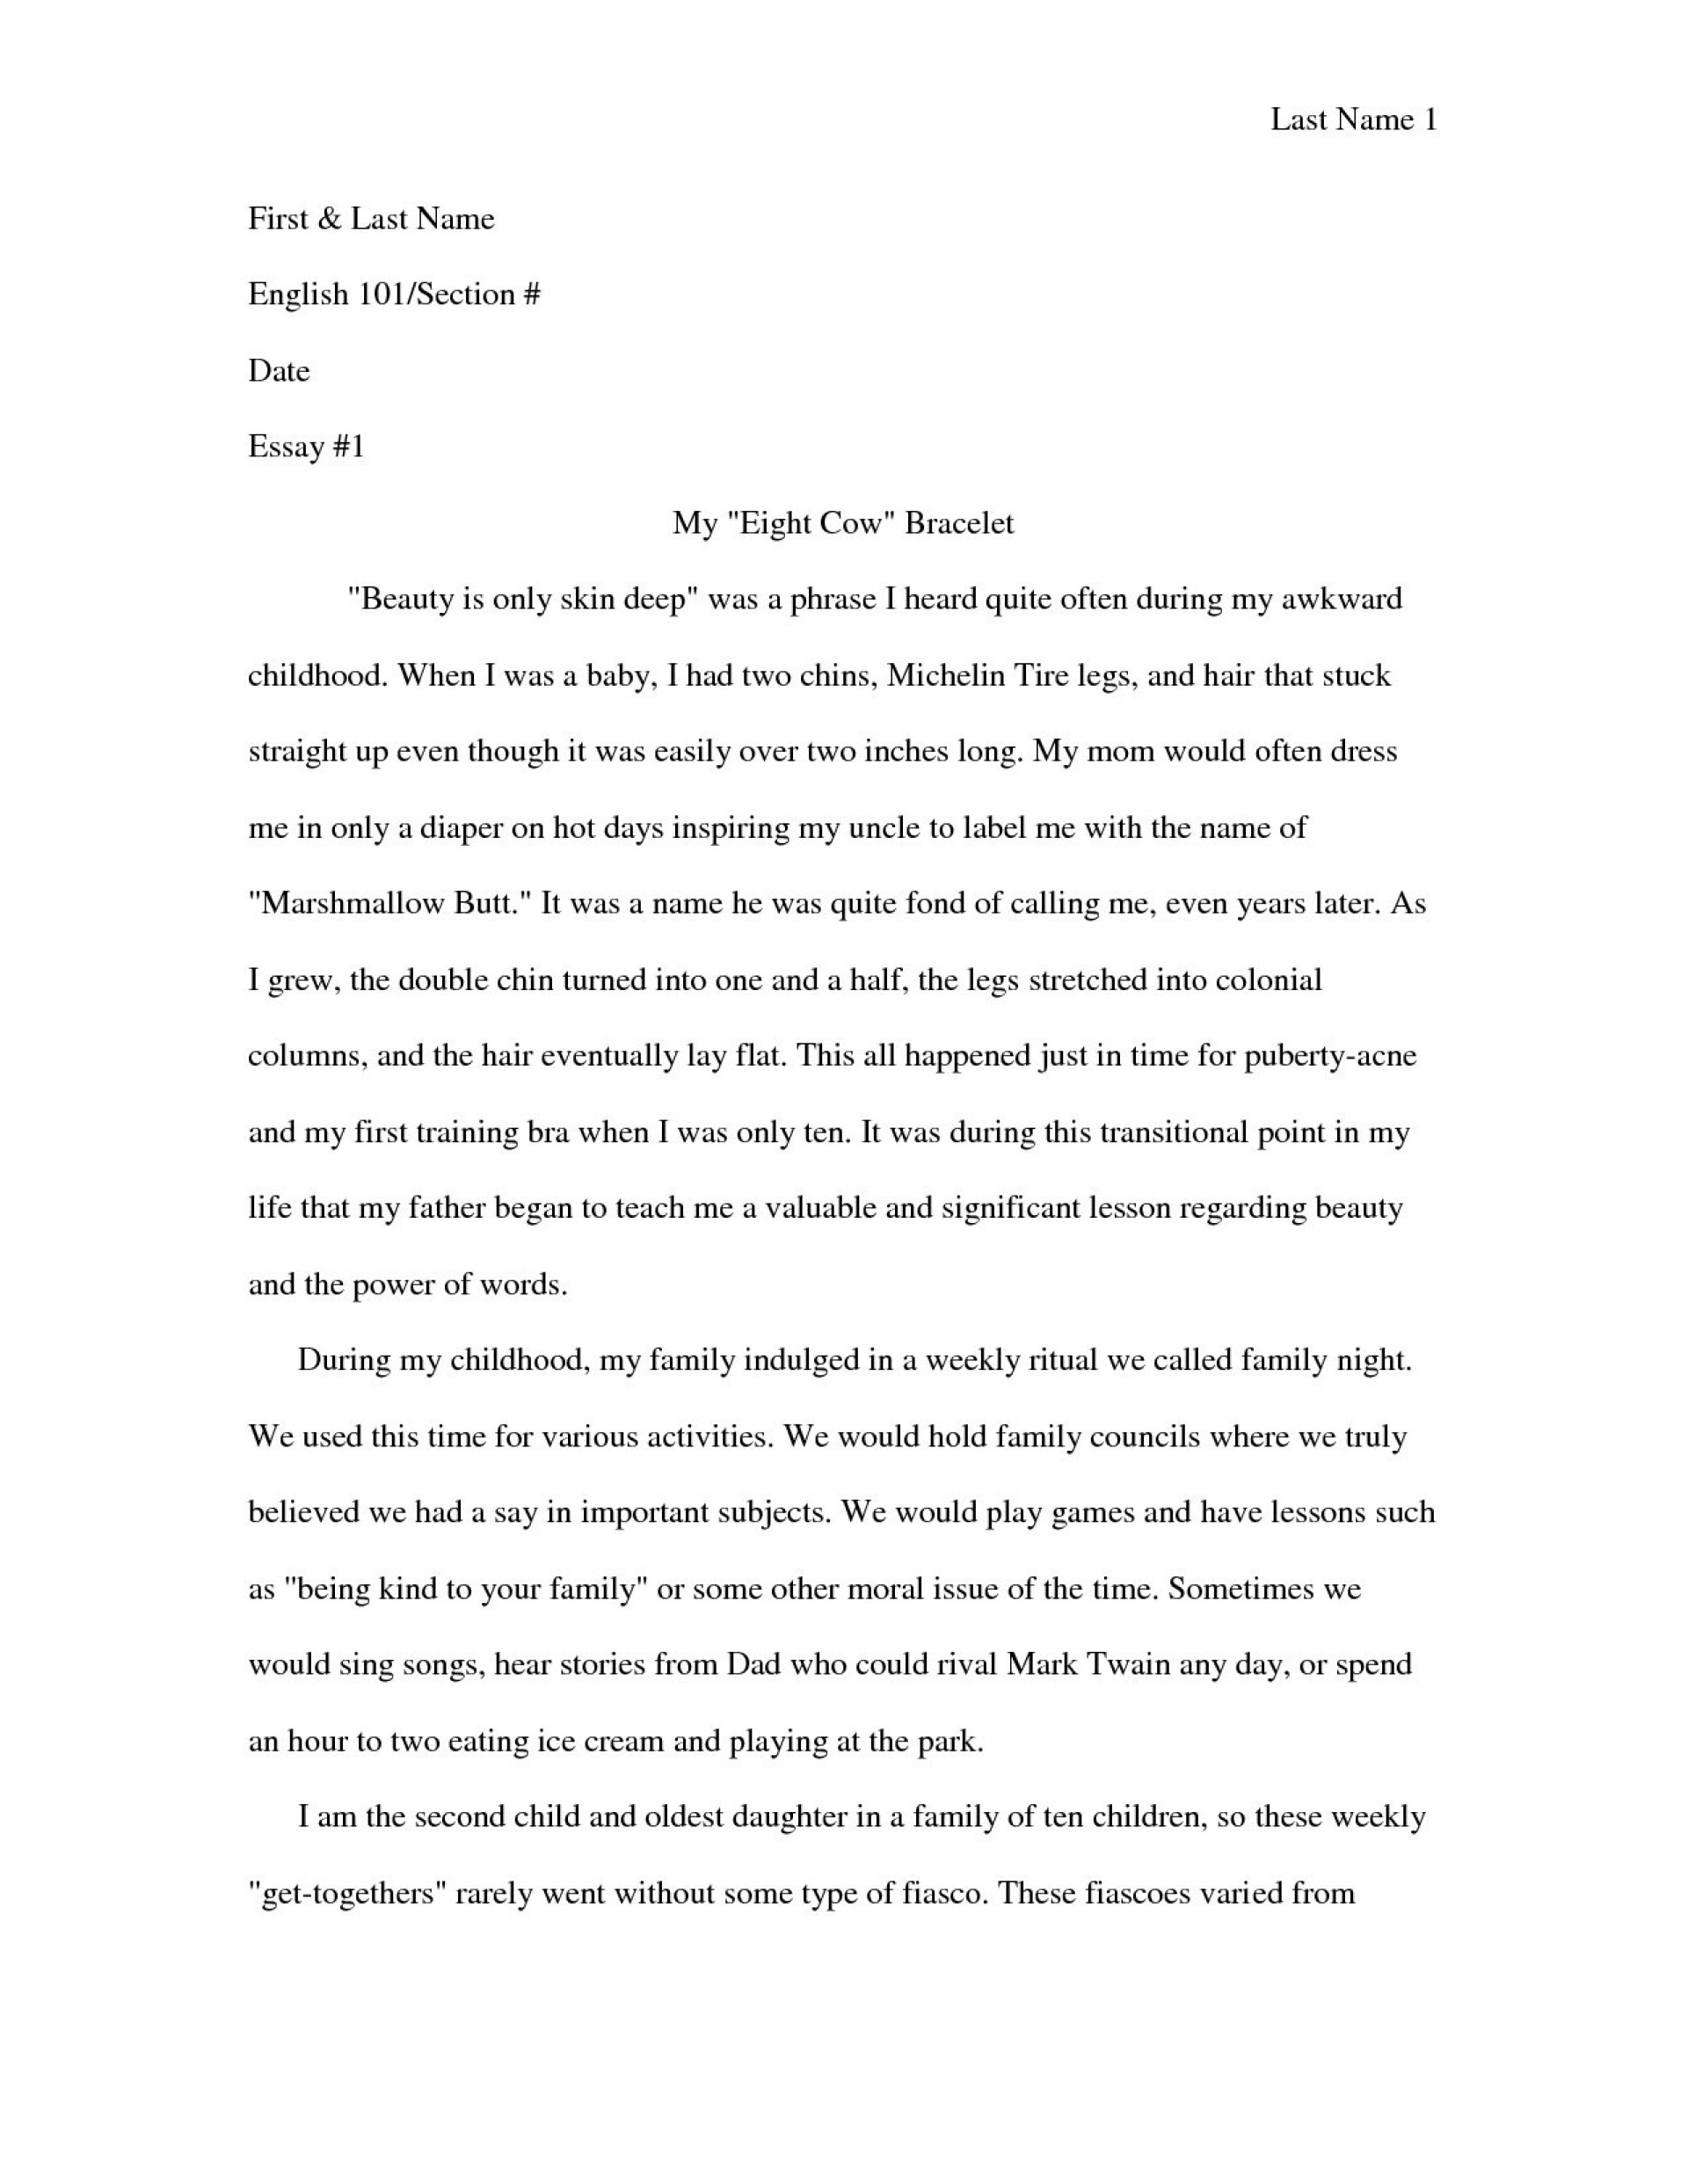 006 Essayample Writing Narrativeamples Personal An For College Application Resume Write Sch Academia Research Center Ge Powerpoint 4th Grade Ppt Outline Step By Mrsniradale Archaicawful Example Narrative Essay Childhood Memory Losing Loved One Excellent Spm 1920